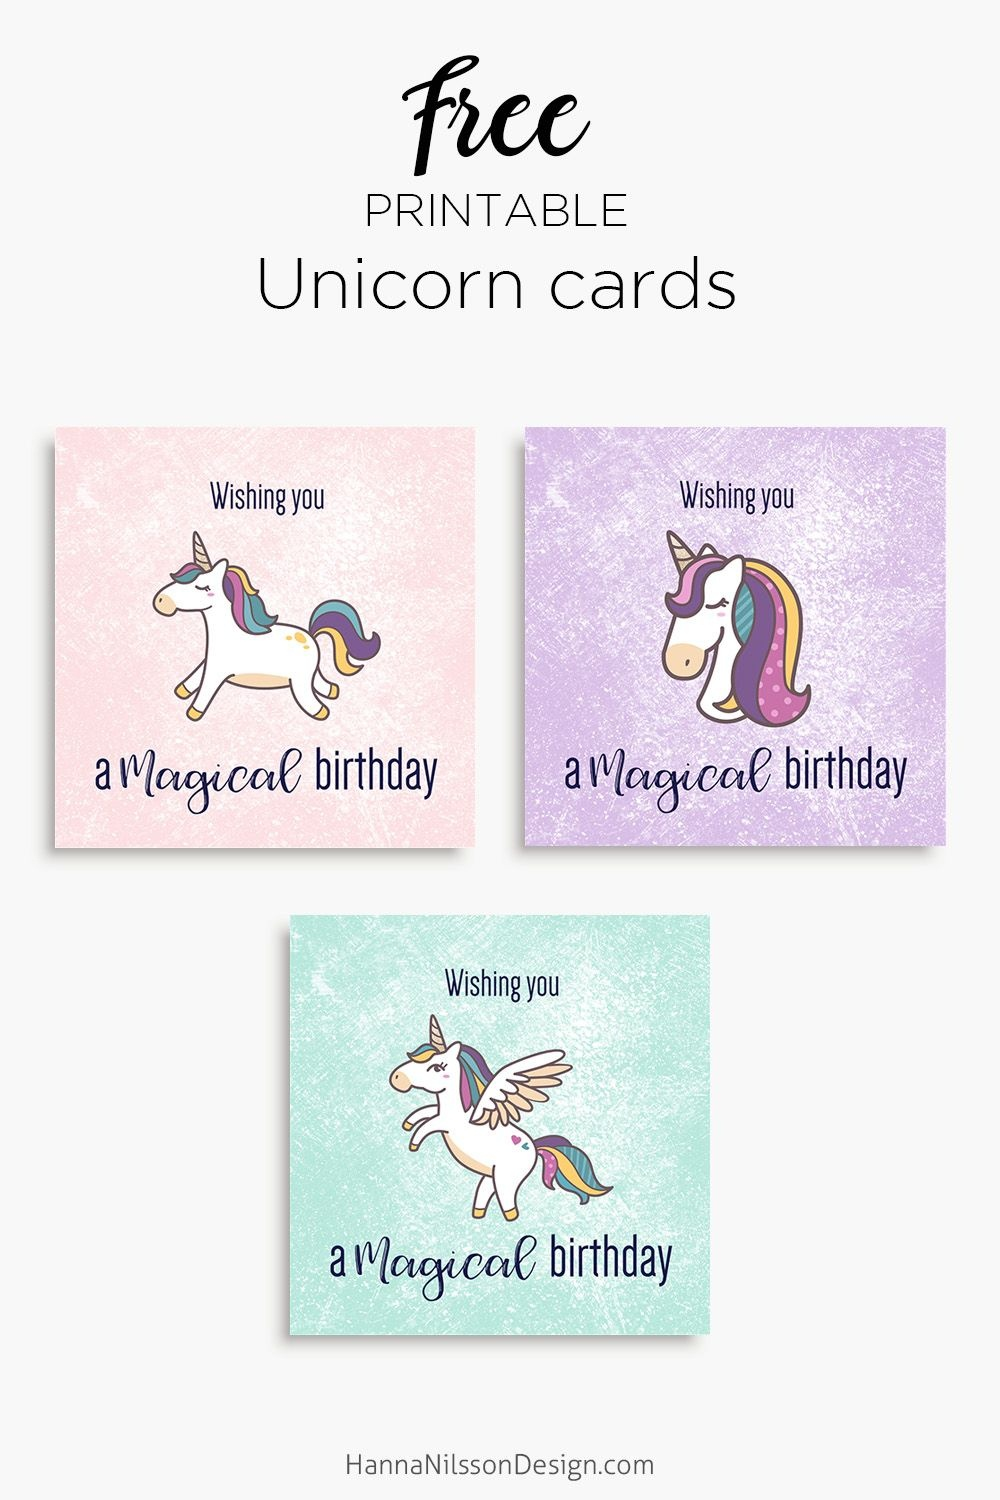 Magical Unicorn Birthday Printable Cards | Tis' Better To Give - Free Online Funny Birthday Cards Printable